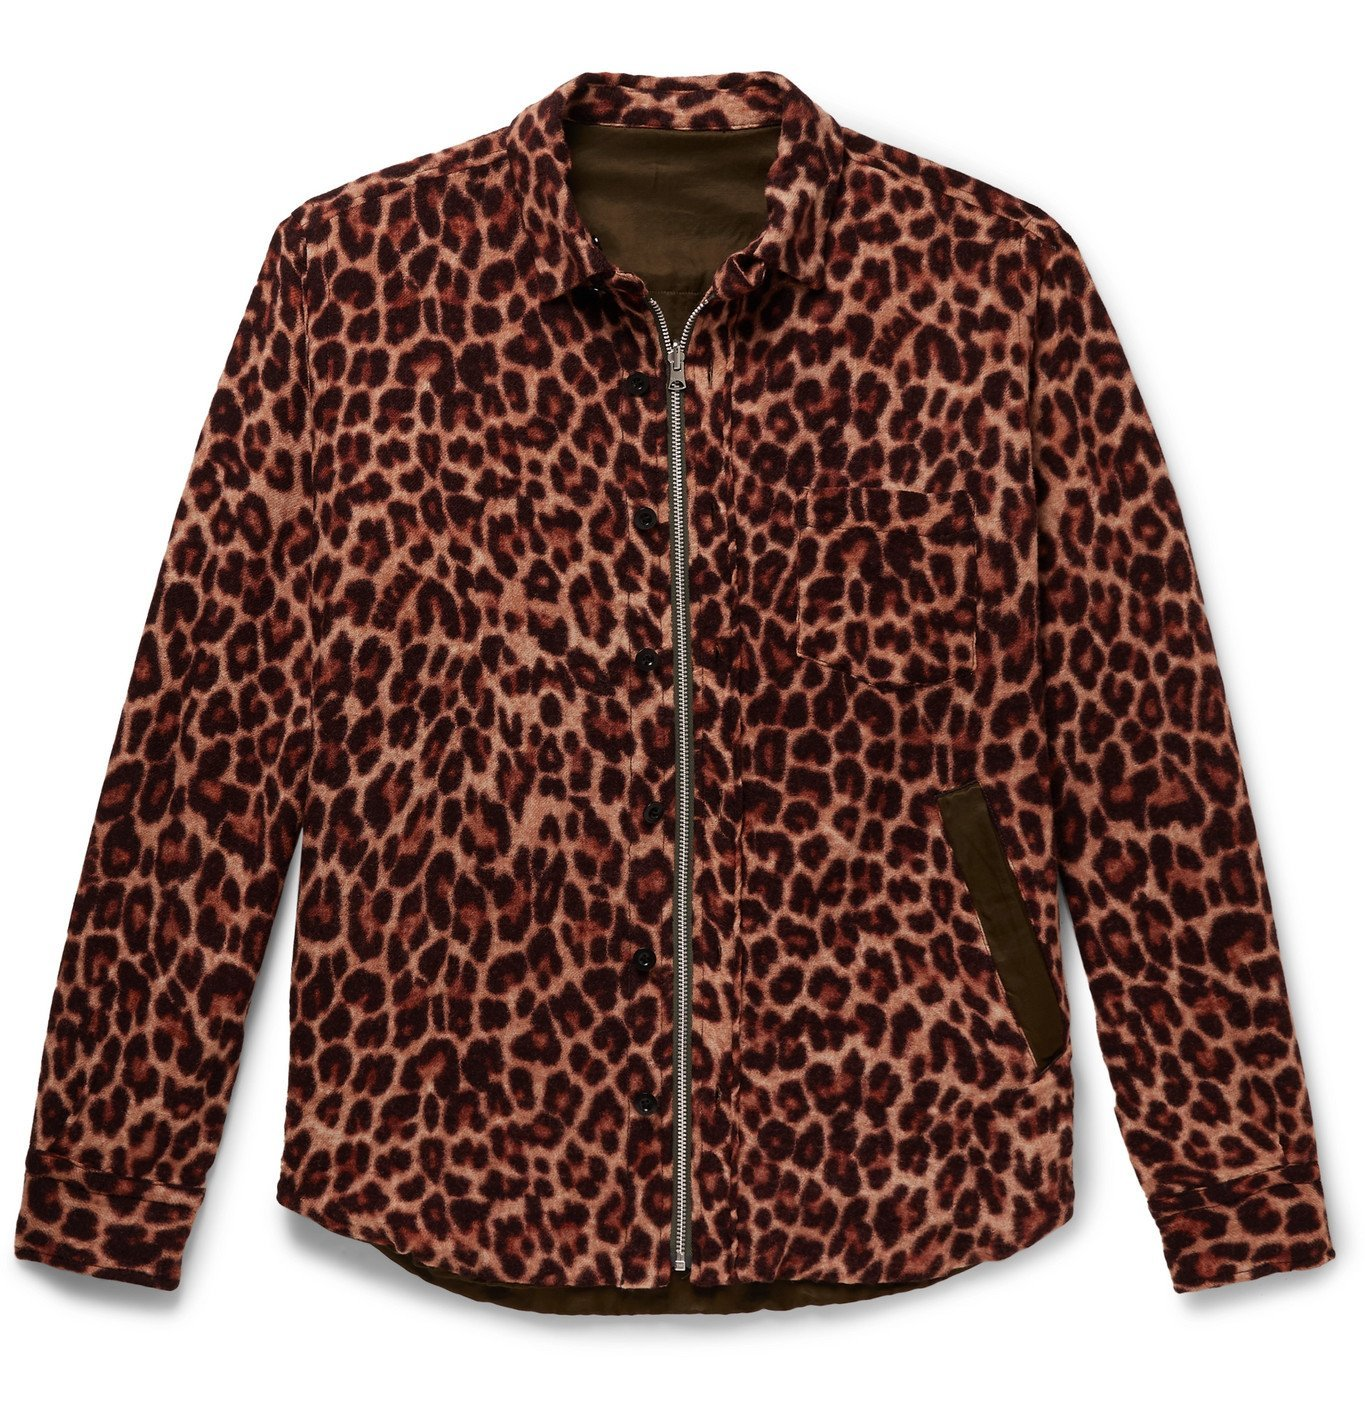 Sacai - Reversible Leopard-Print Wool and Shell Jacket - Brown